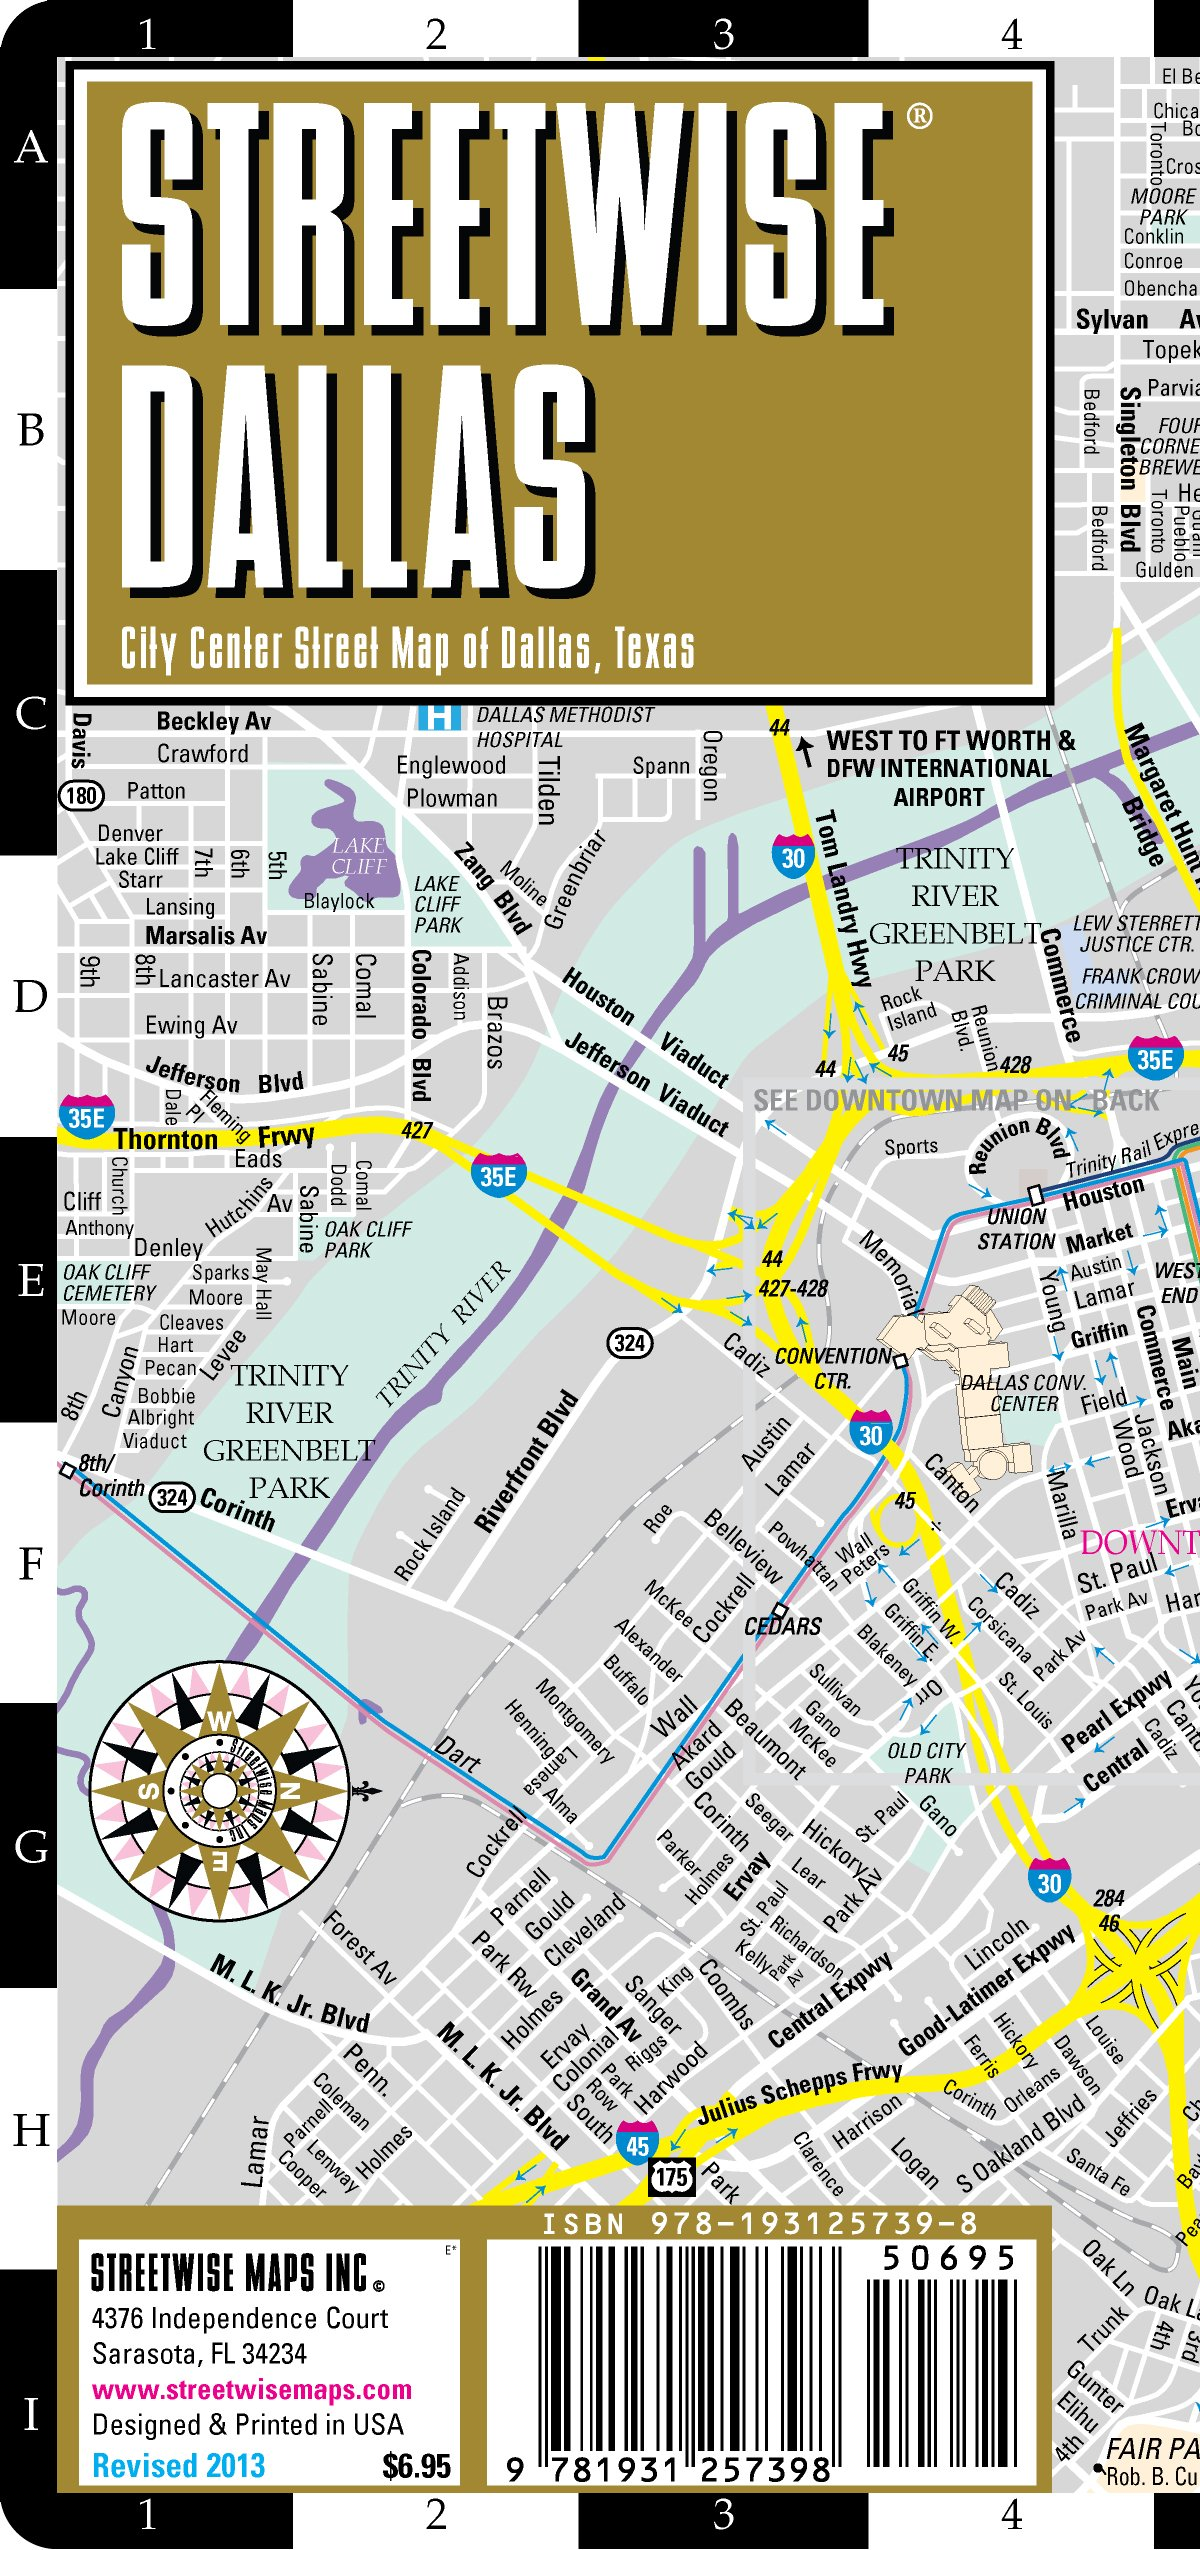 Streetwise Dallas Map - Laminated City Center Street Map of Dallas on